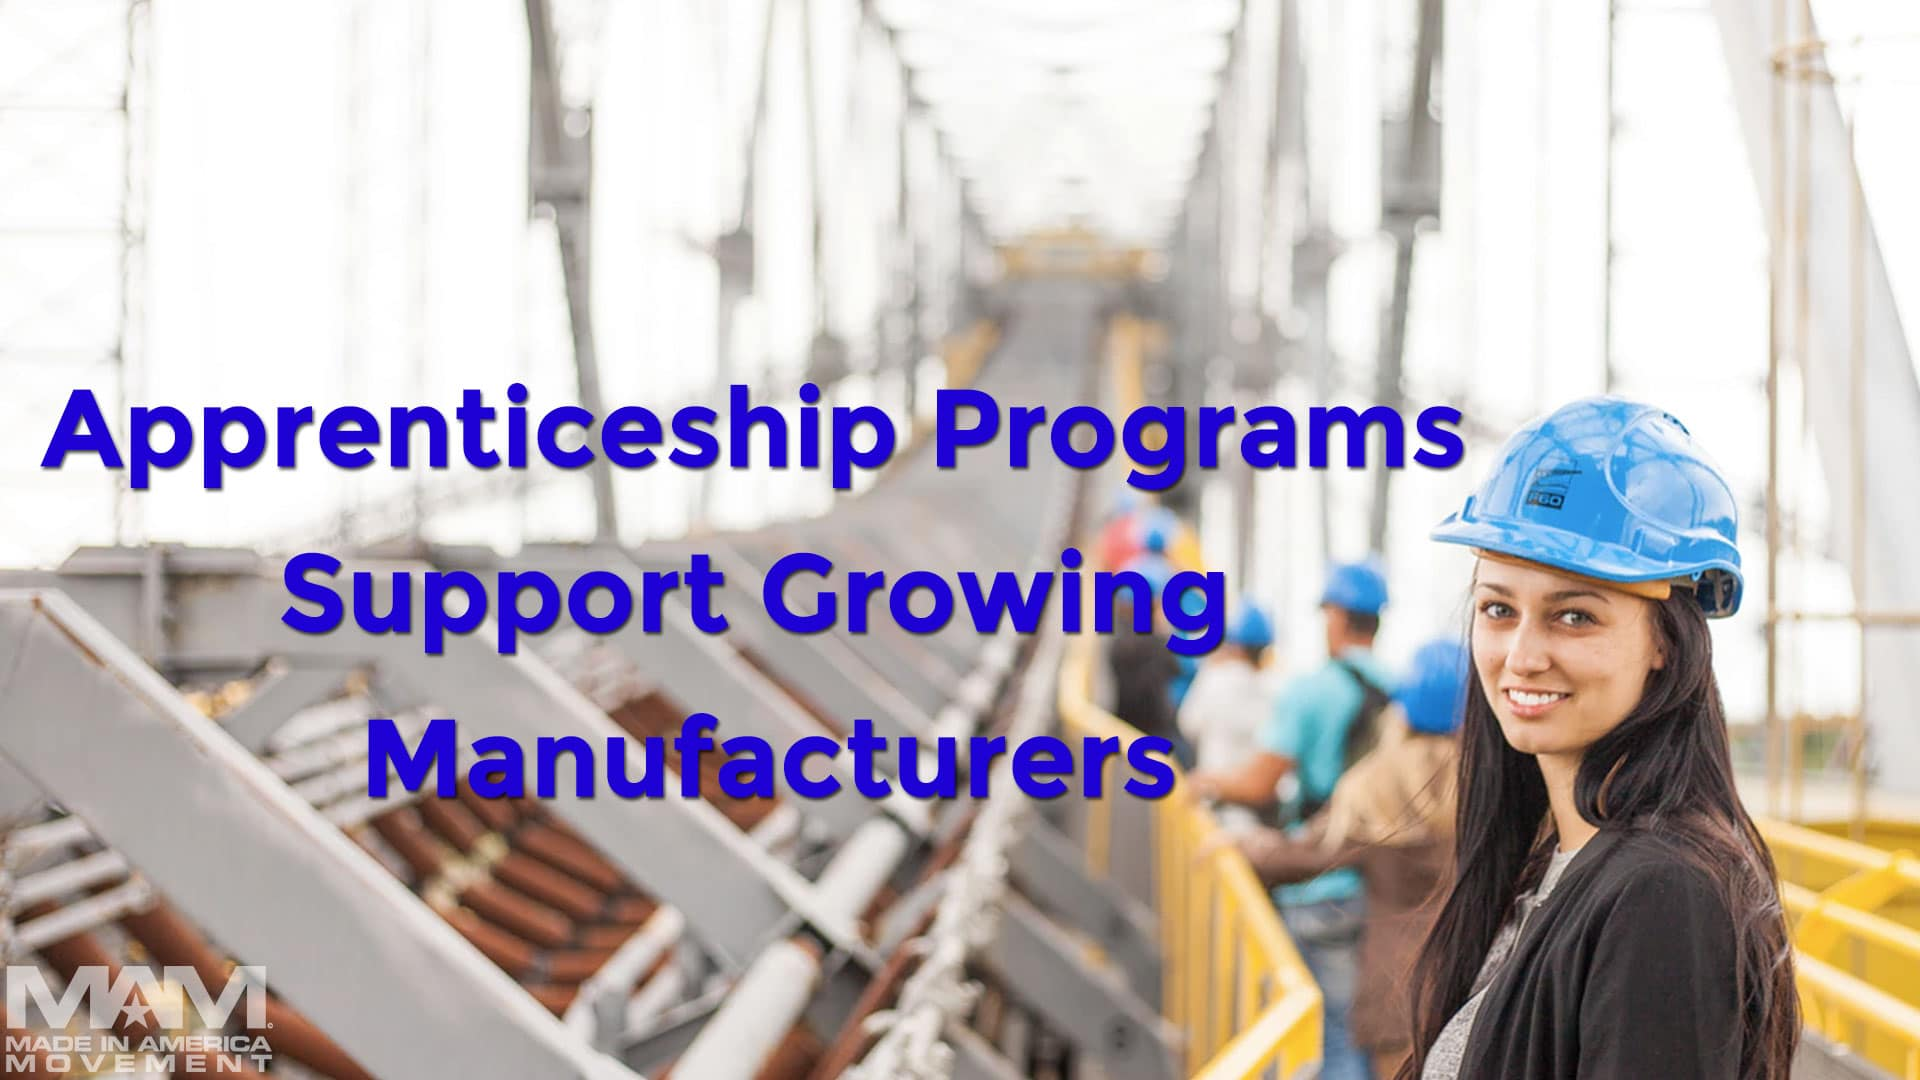 APPRENTICESHIP PROGRAMS SUPPORT GROWING MANUFACTURERS